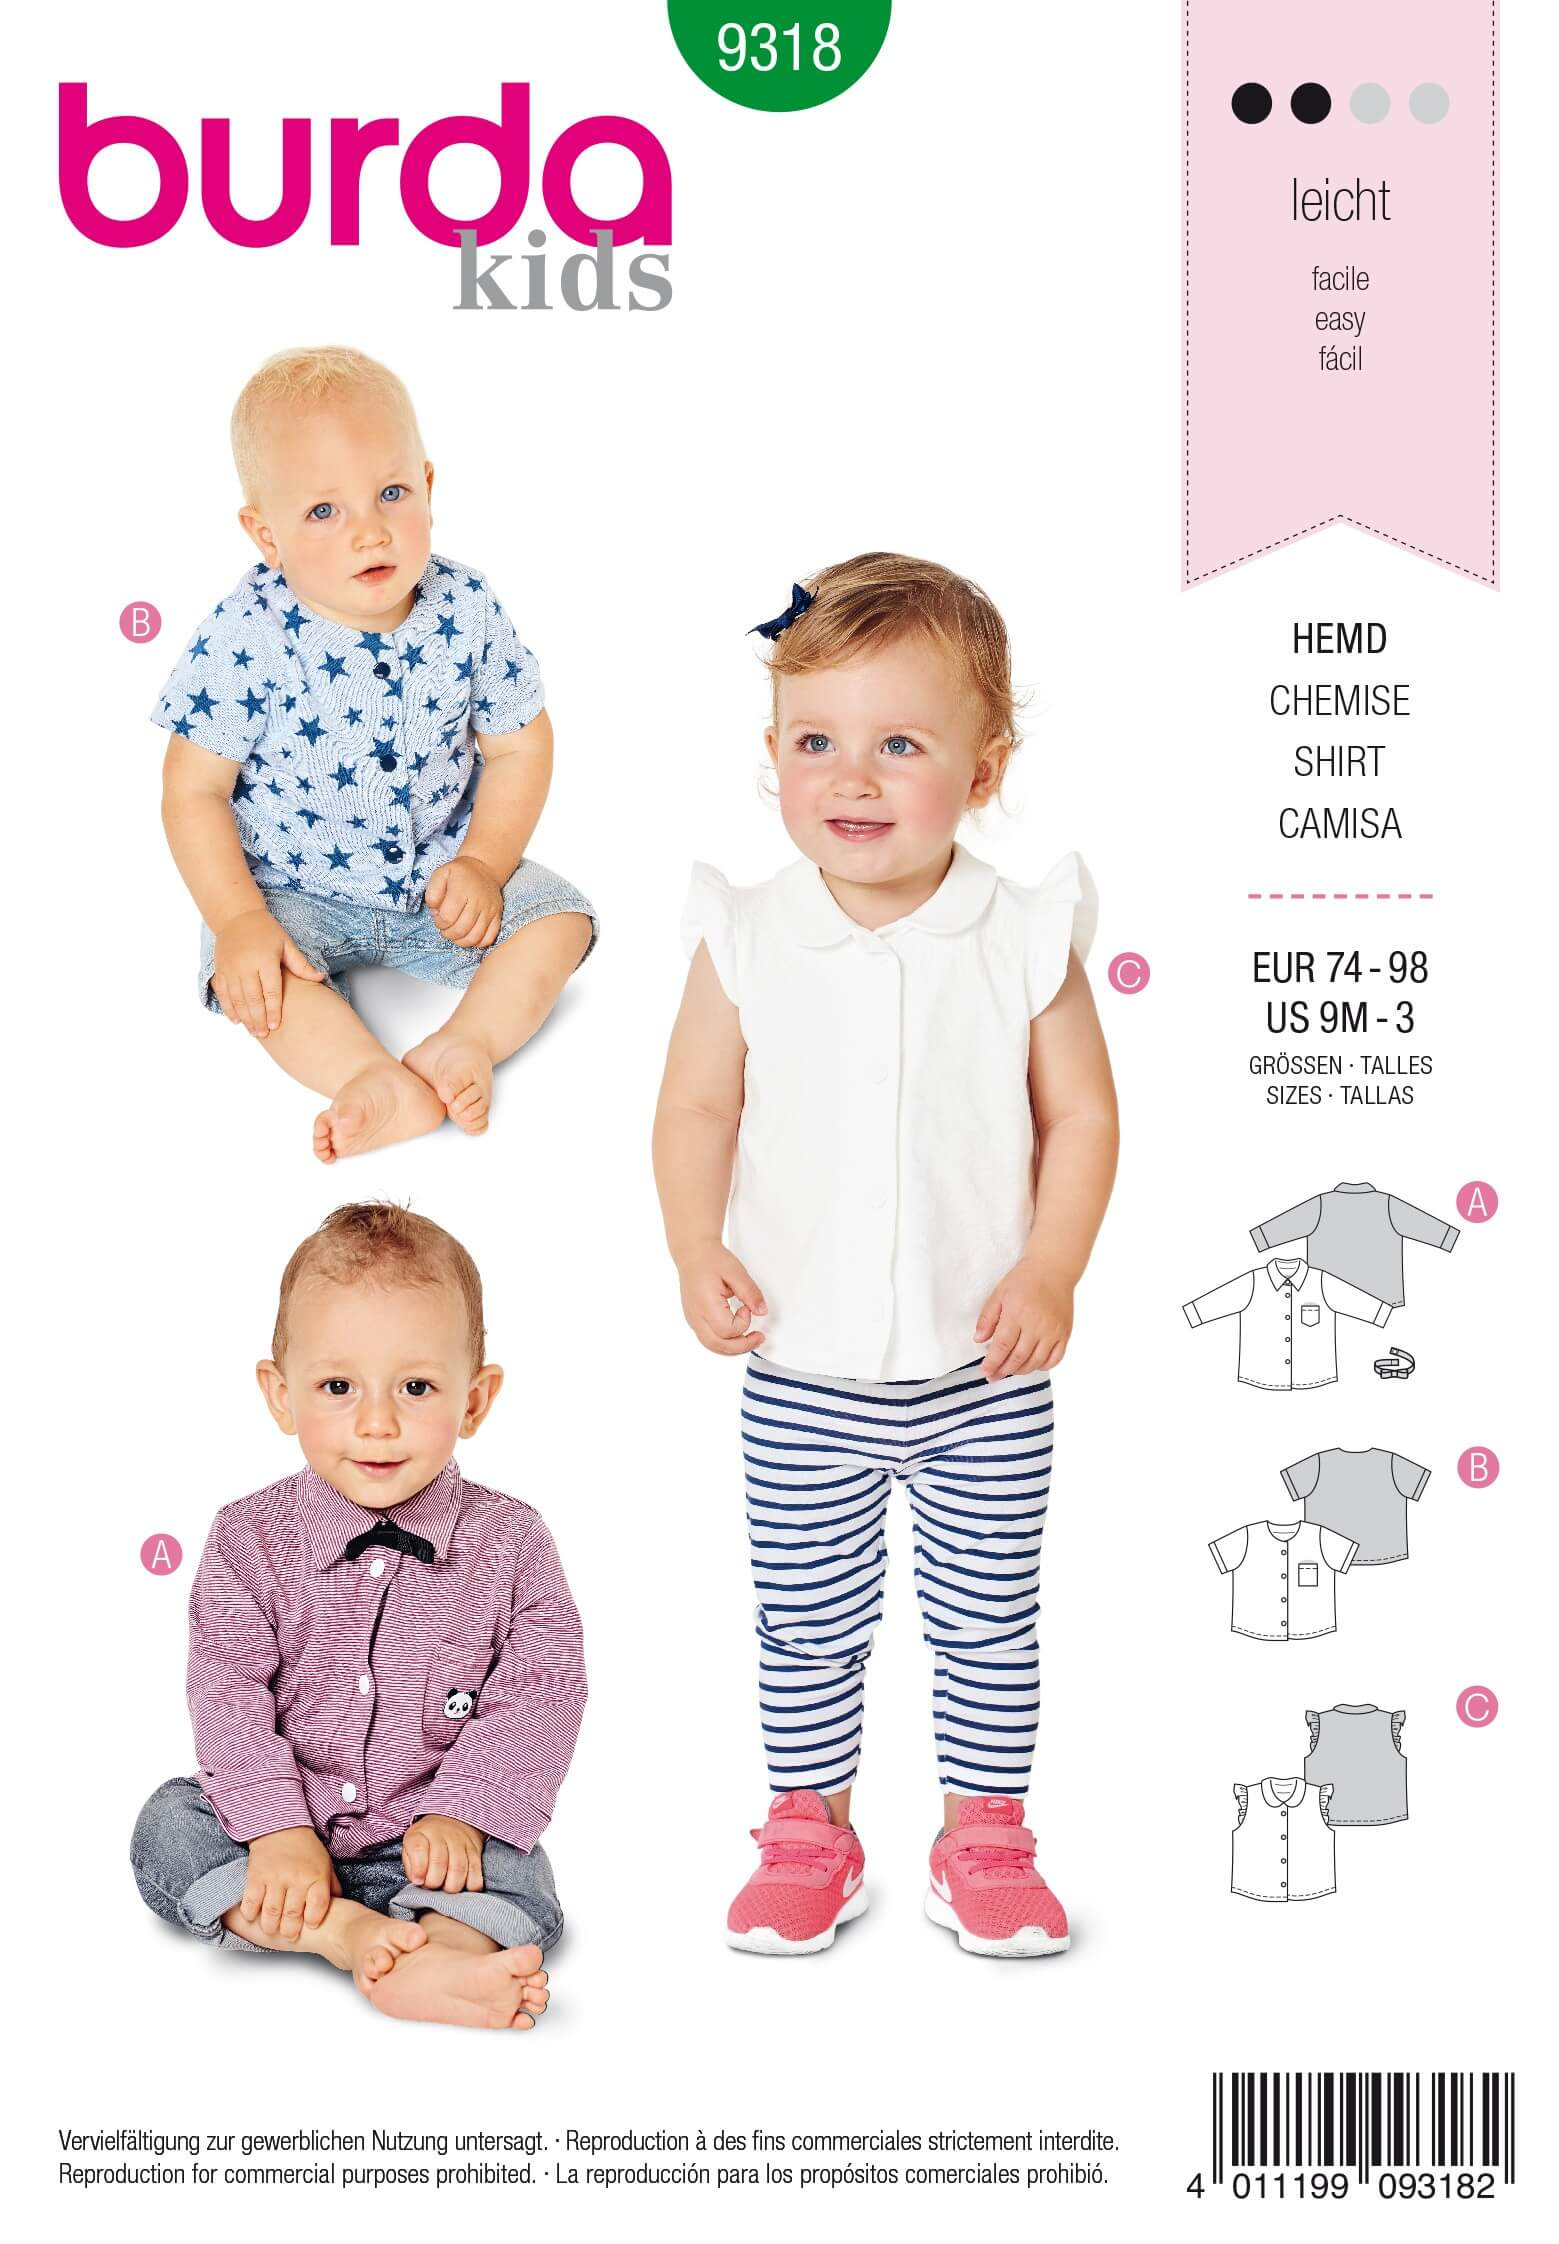 Burda Baby's Shirt With Bow Tie Blouse Formal Wear Sewing Pattern 9318